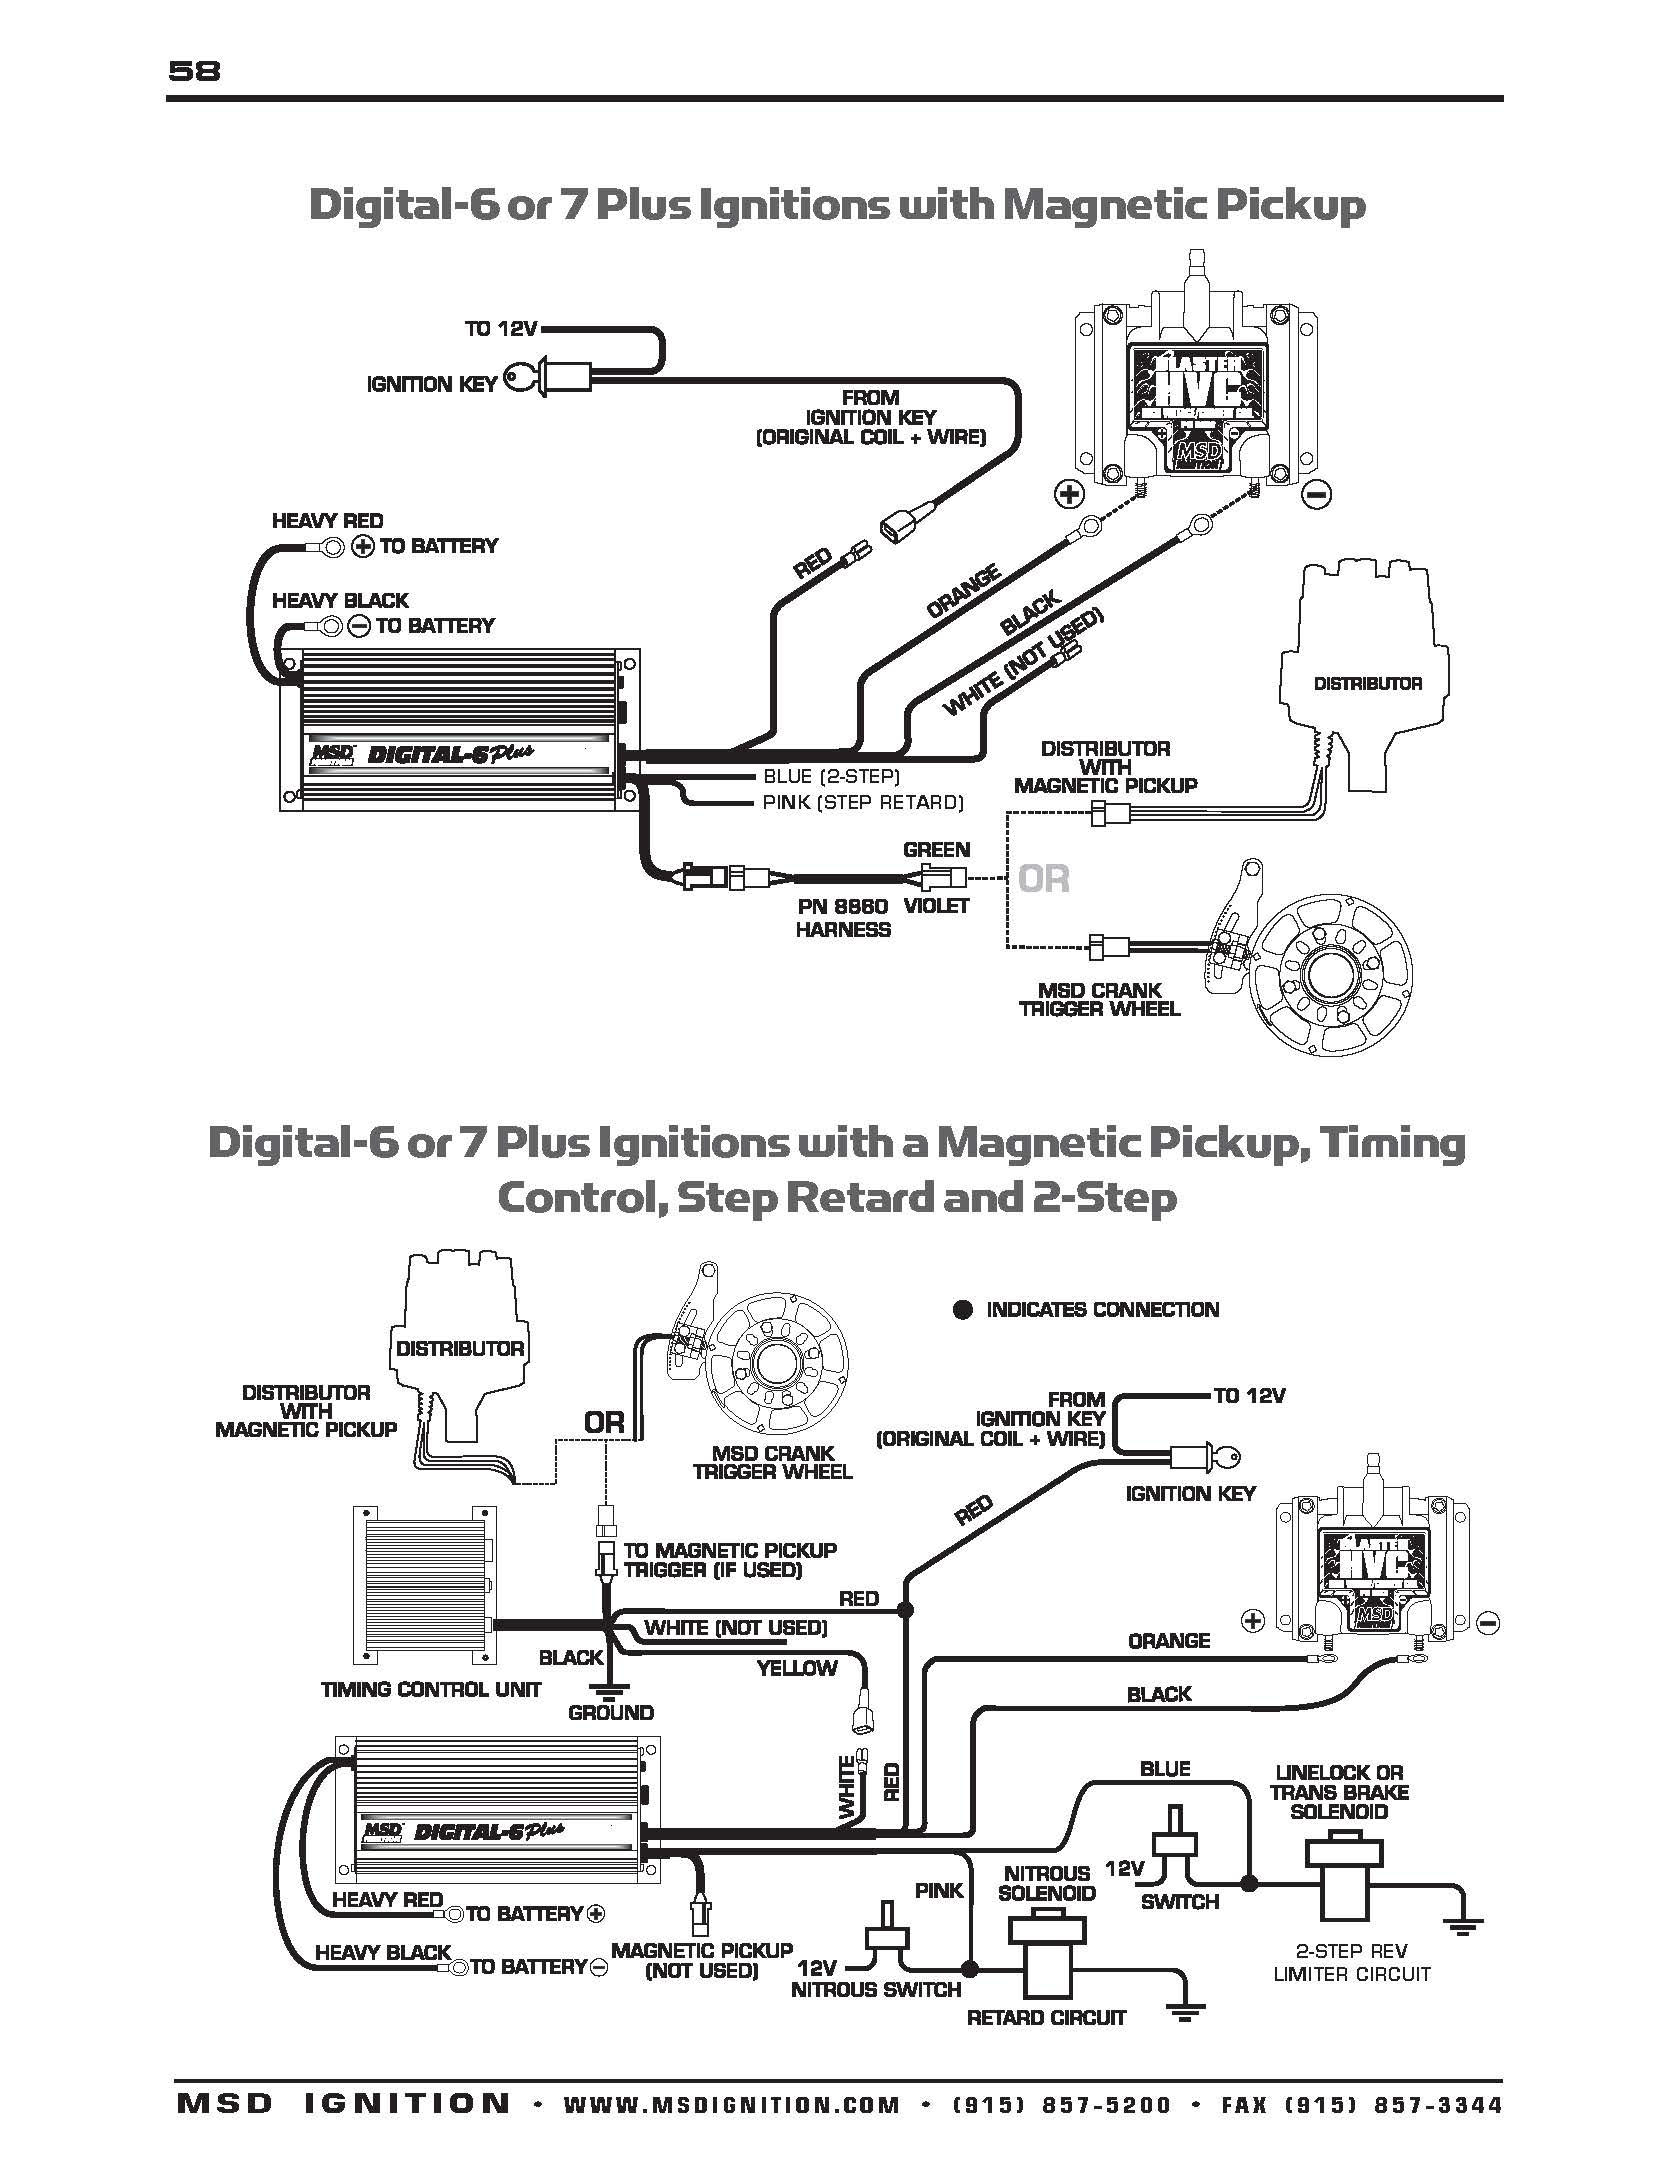 Cat6A Wiring Diagram from 2020cadillac.com